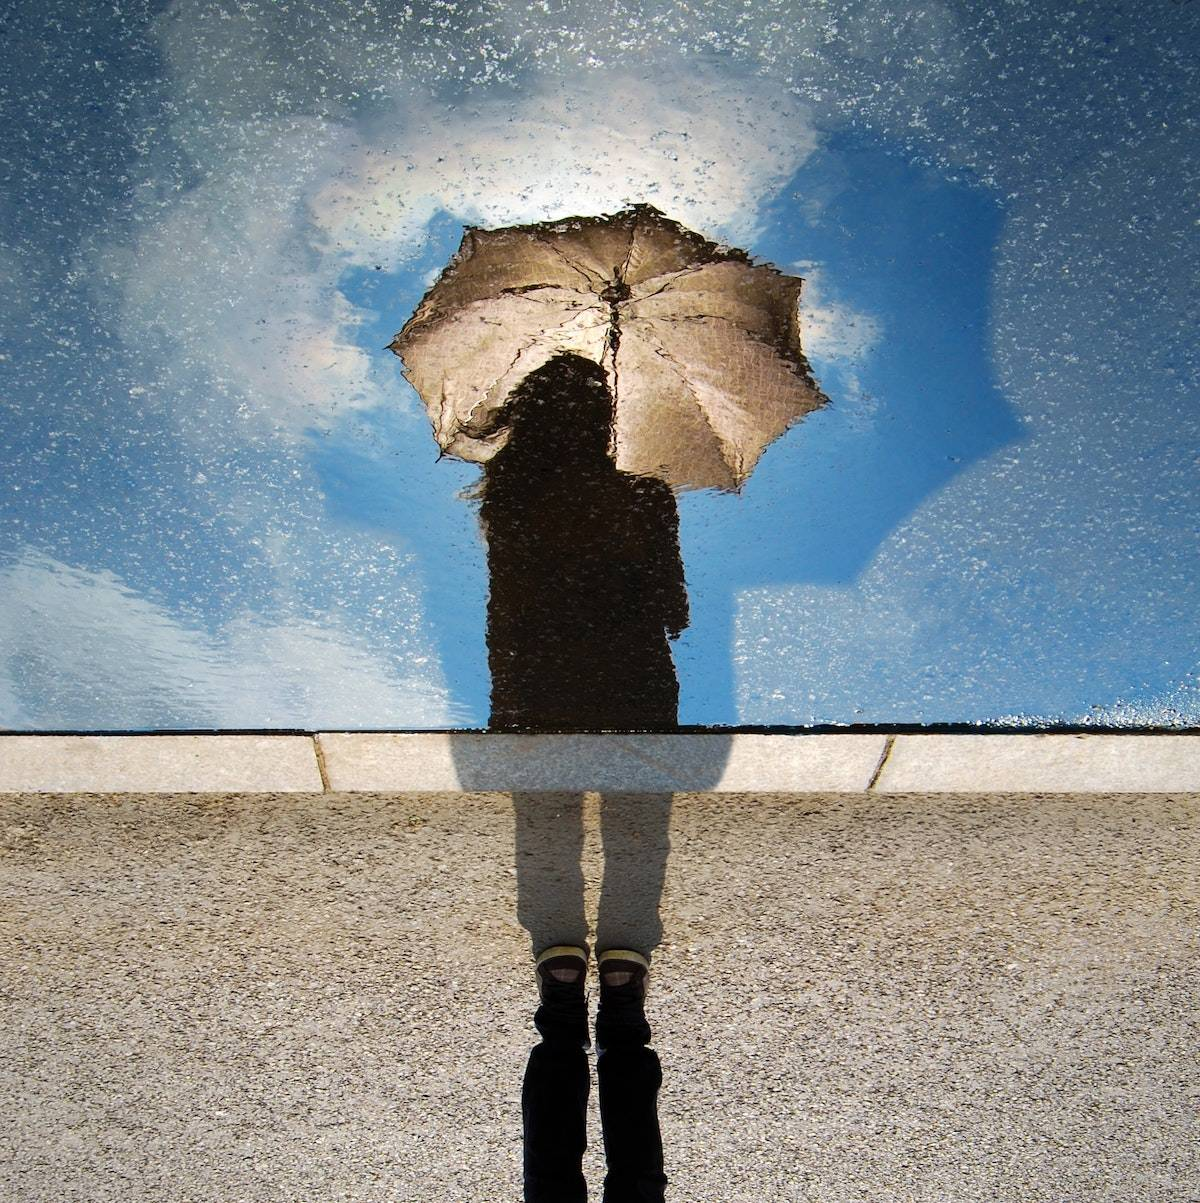 life before COVID: reflection in a puddle of a woman holing an umbrella, bright blue sky behind her